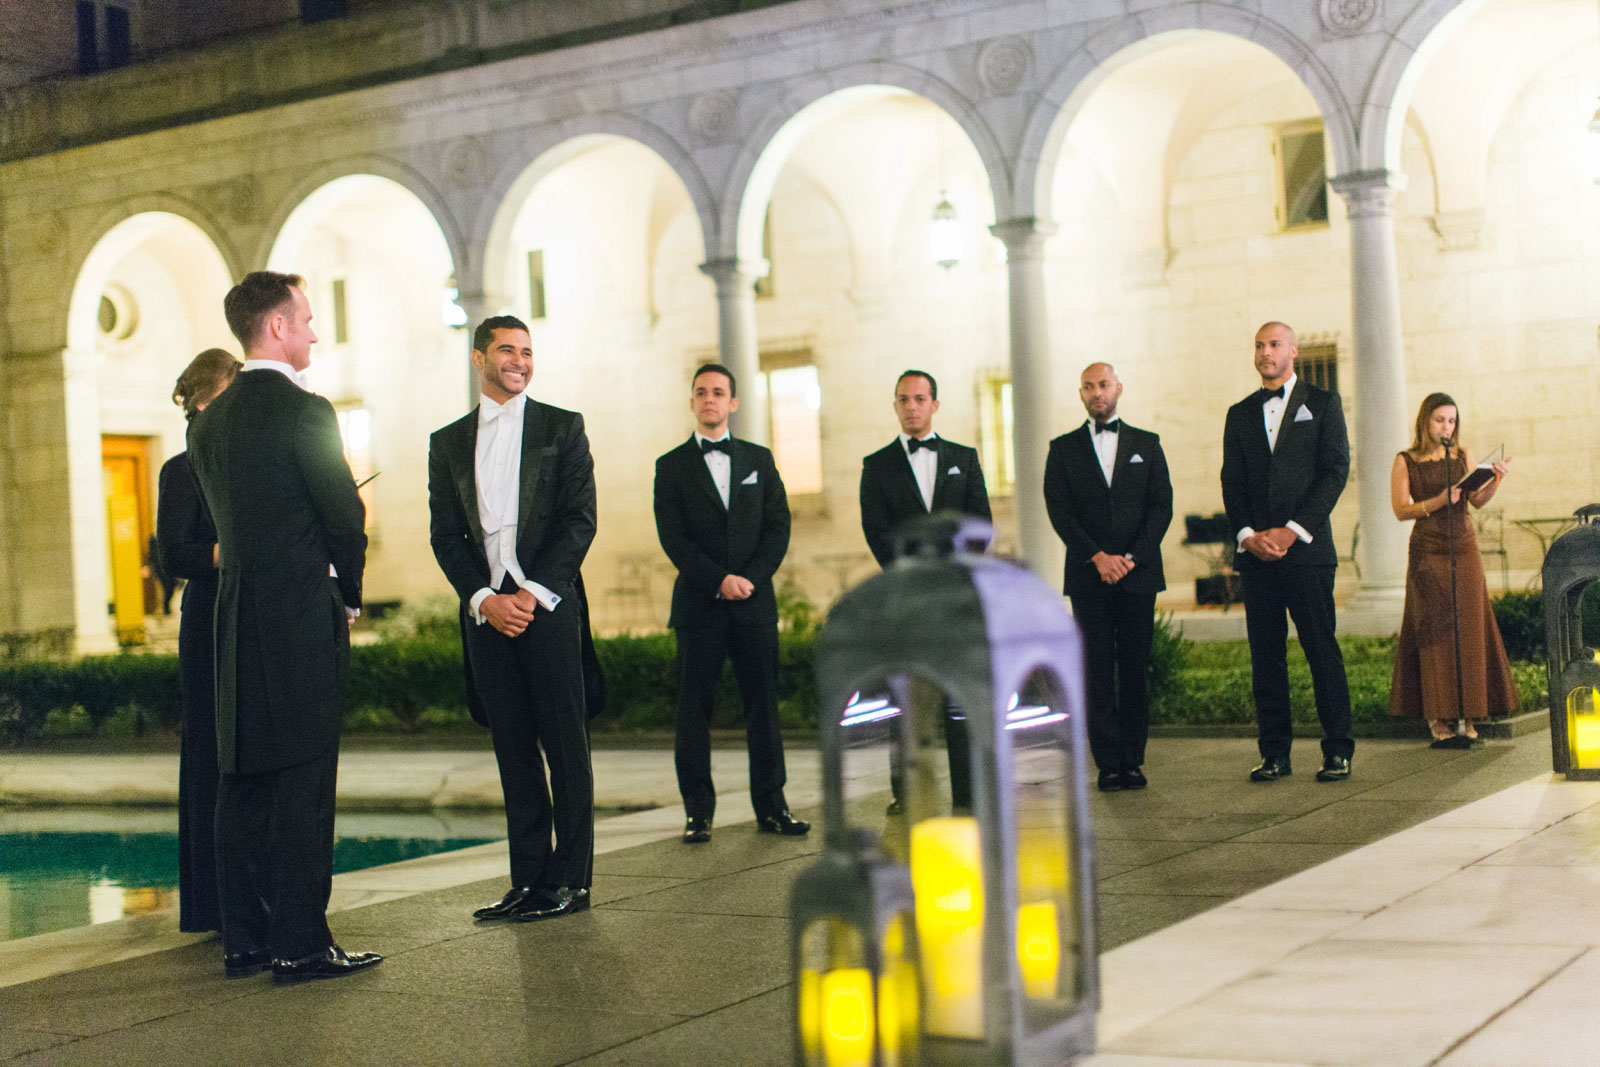 Groom looks excitedly at guests during outdoor wedding ceremony at Boston public library at night